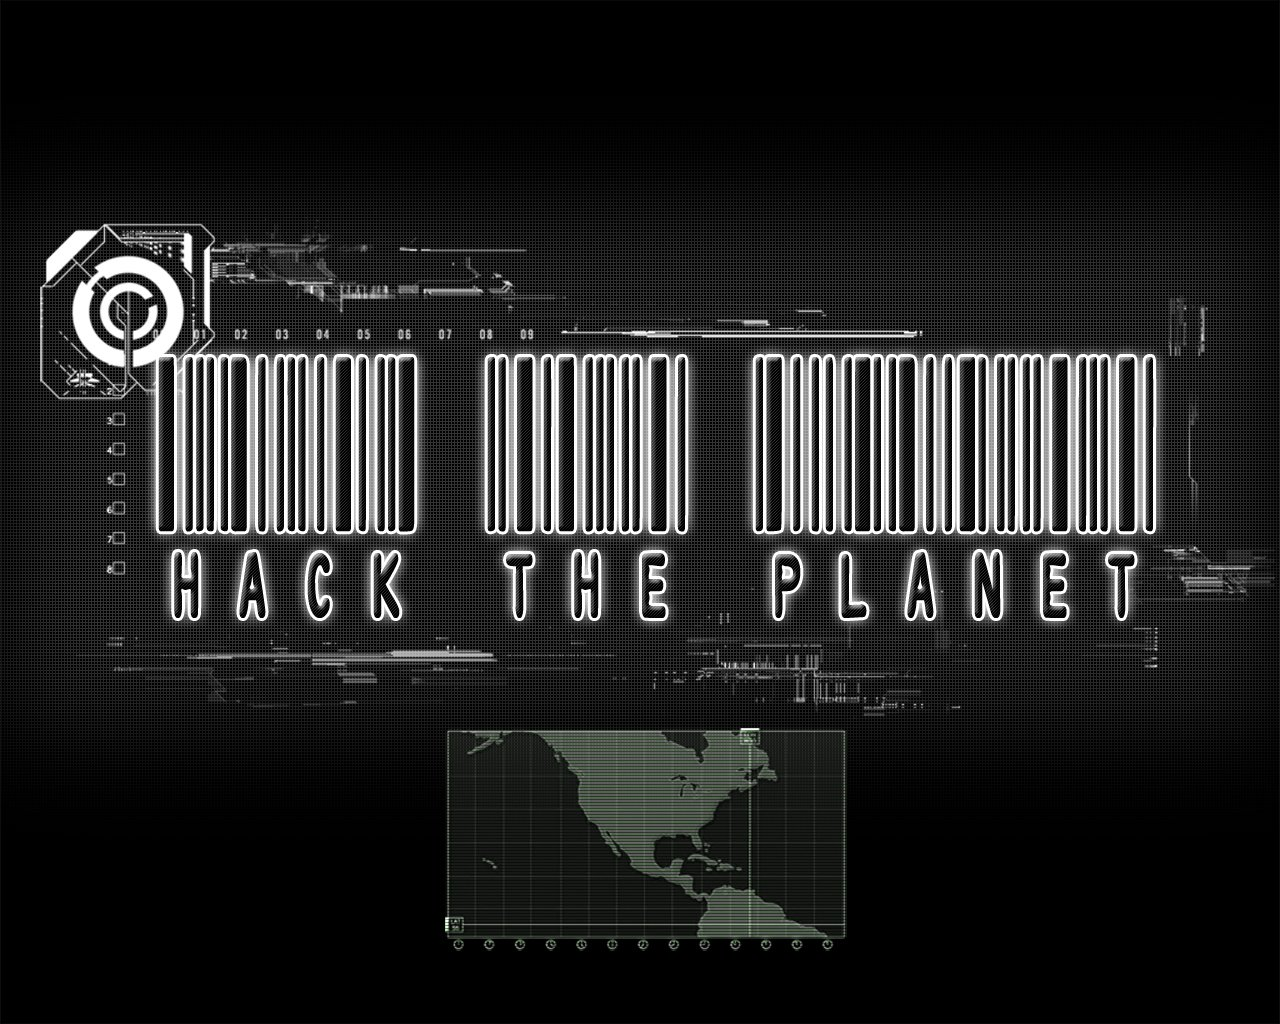 Hack The Planet Barcode Desktop Wallpapers and Backgrounds 1280x1024